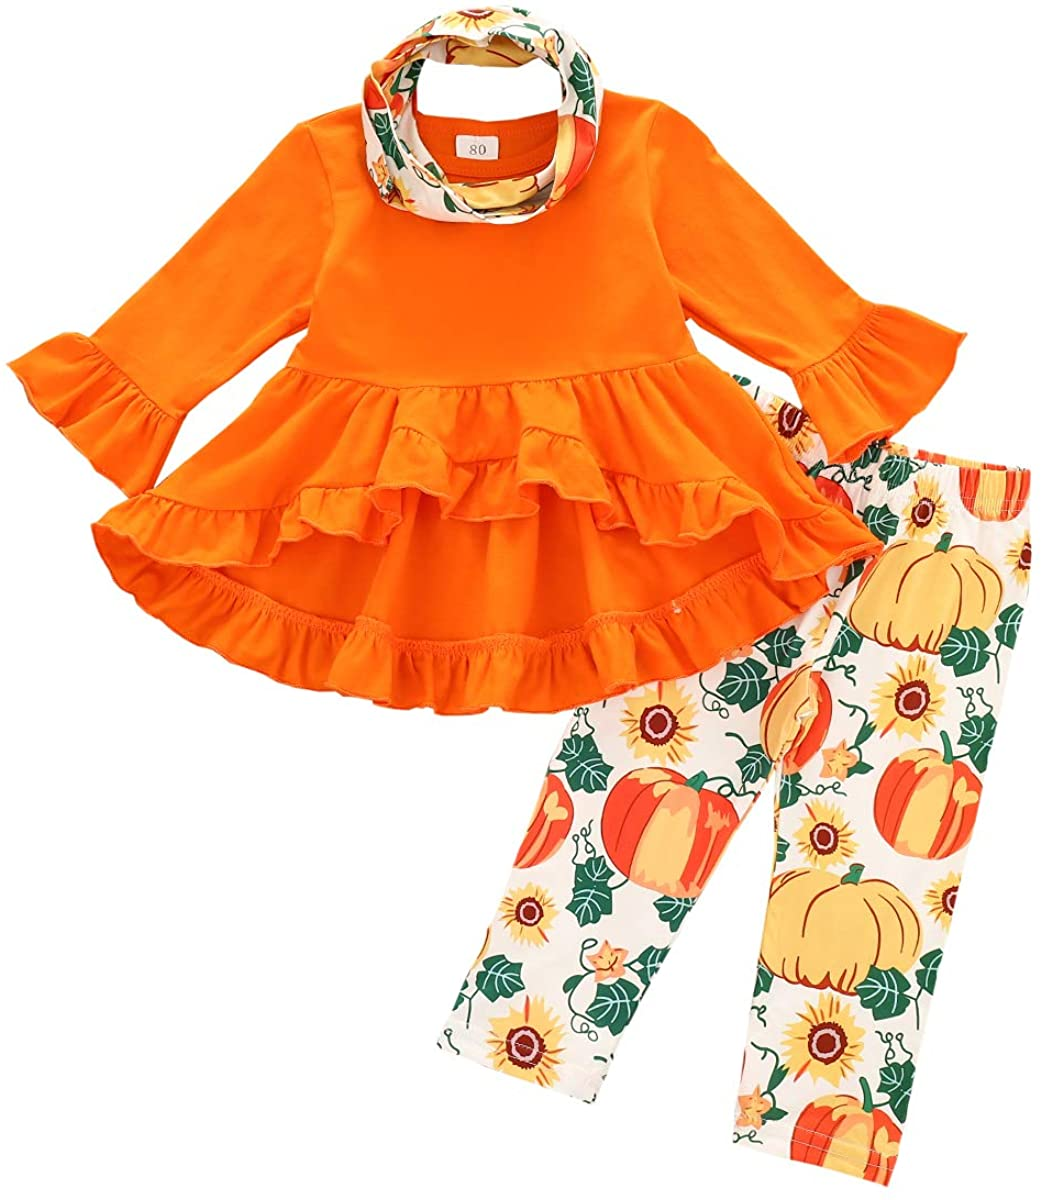 Toddler Infant Baby Girl Halloween Outfit Long Sleeve Solid Color Ruffle Dress T-Shirt Top+Pumpkin Pants+Scarf 3PCS Set